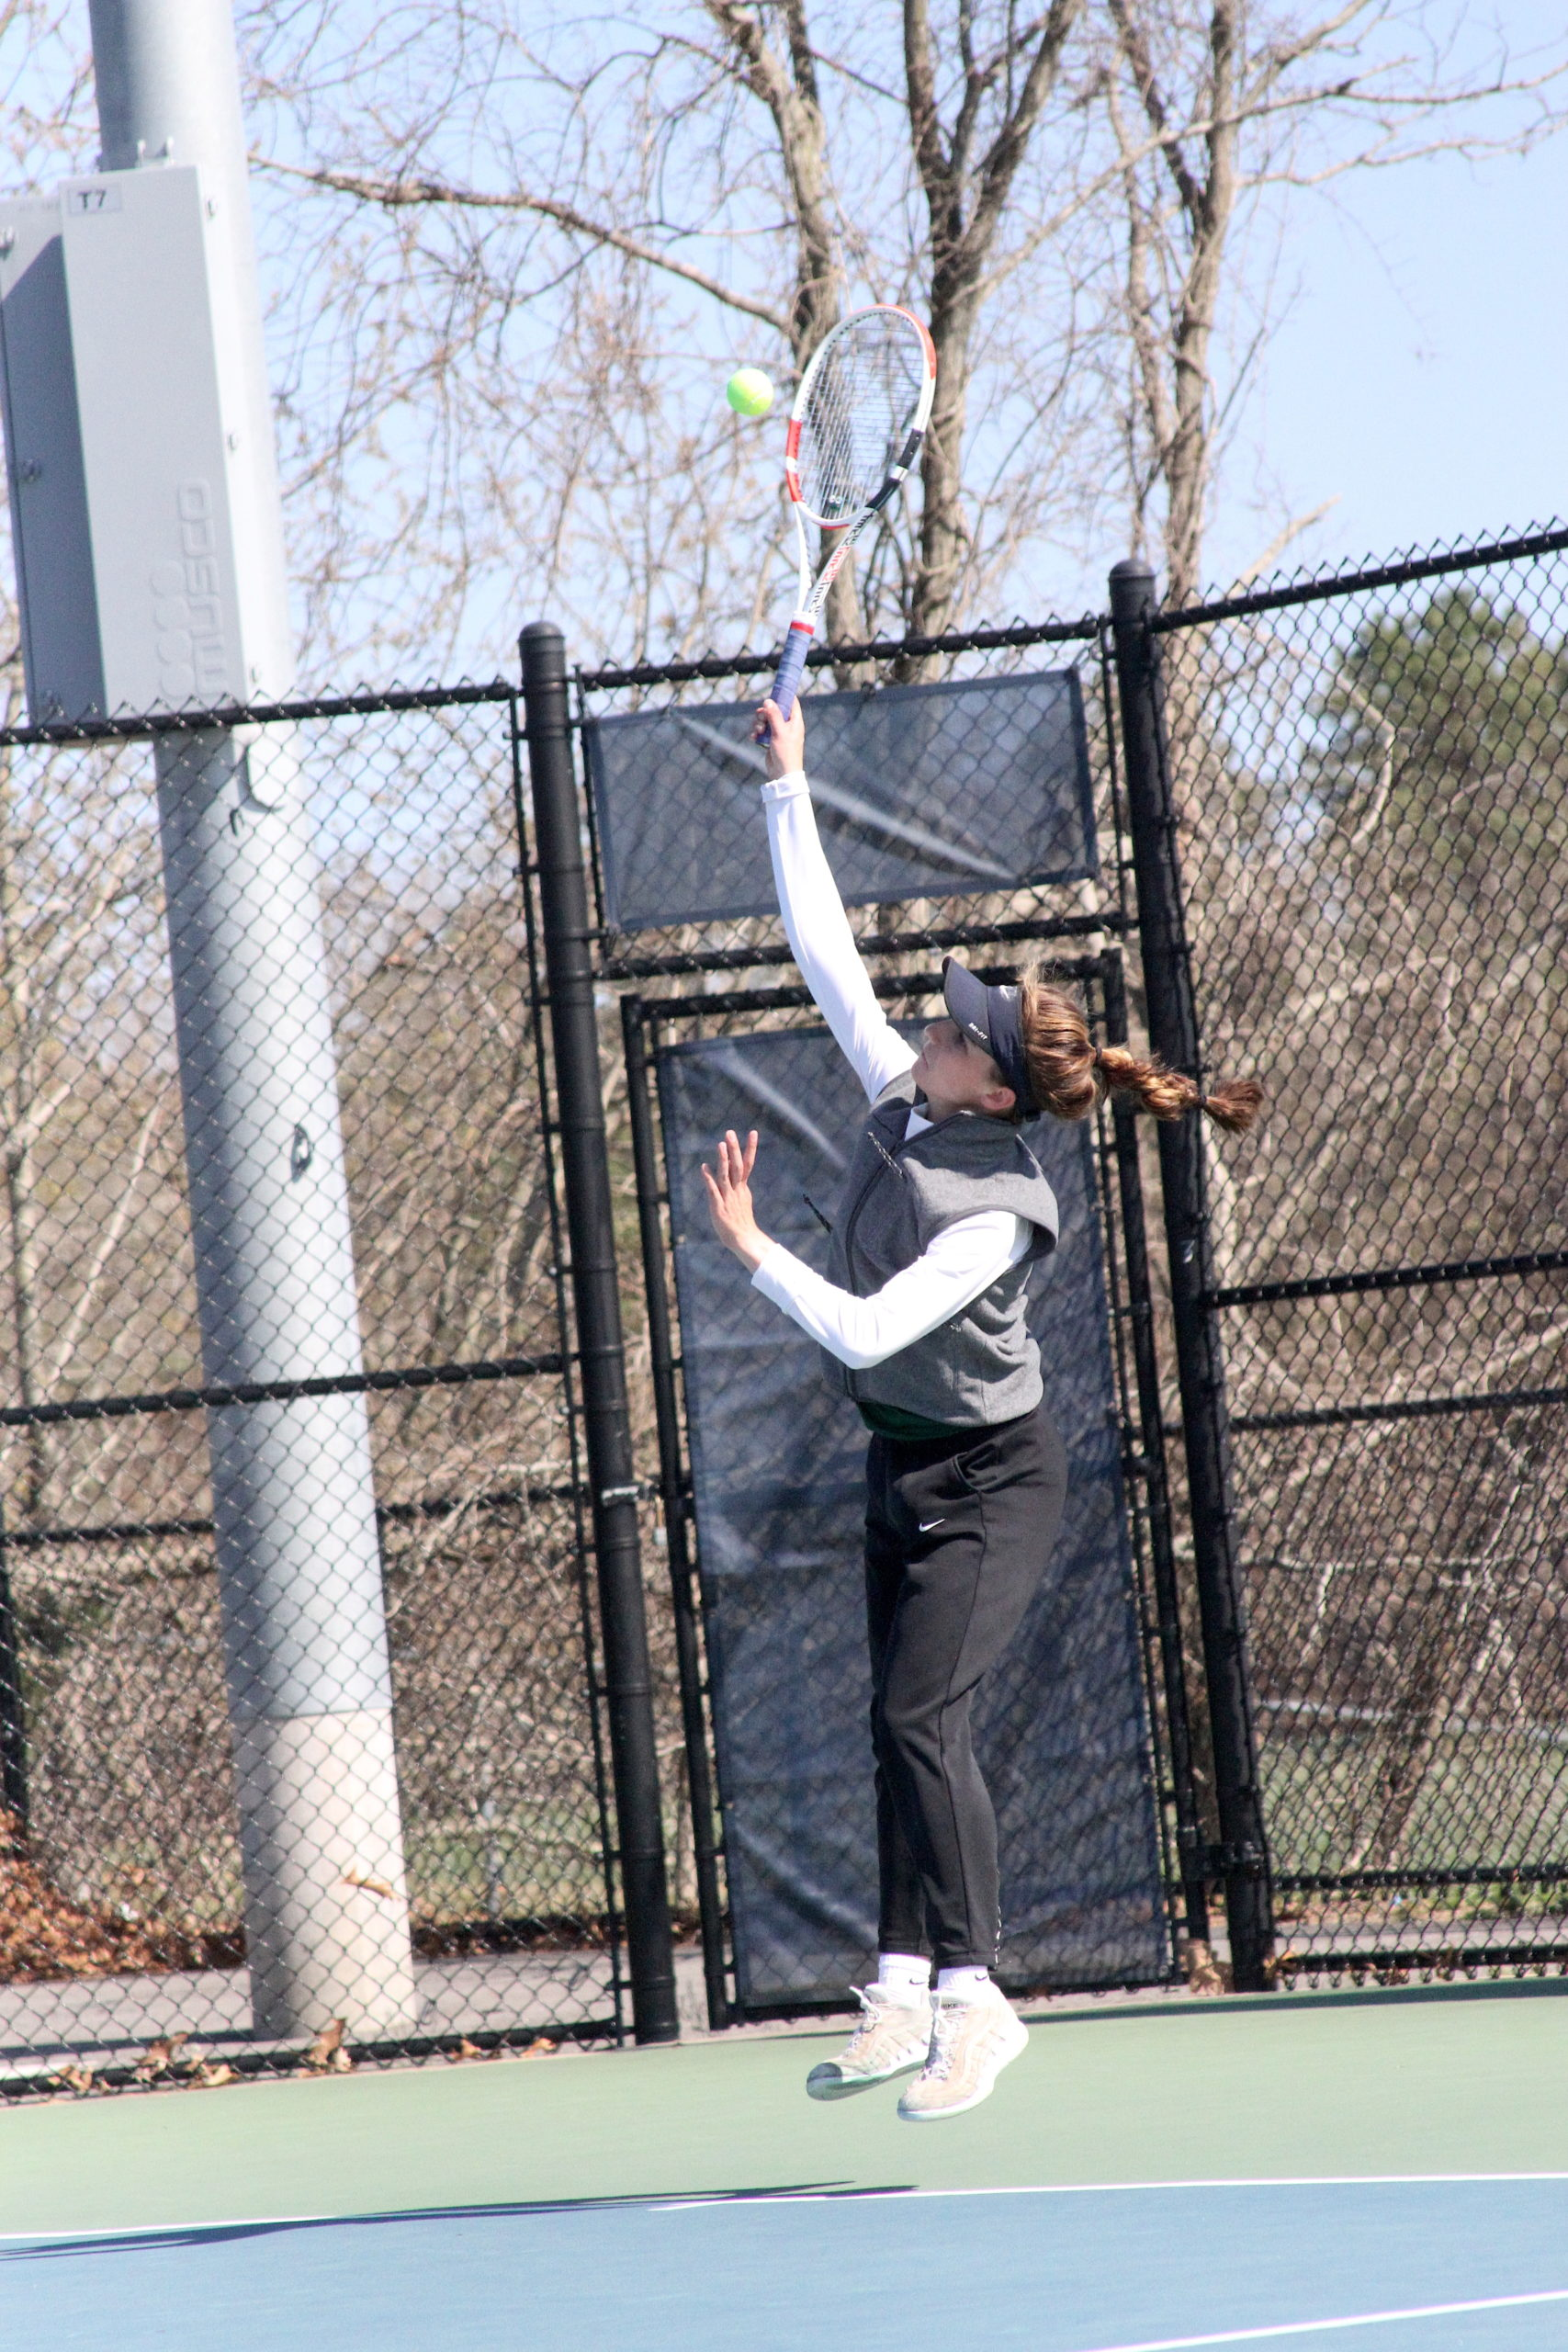 Westhampton Beach junior Rose Hayes serves the ball during her Suffolk County singles quarterfinal match.